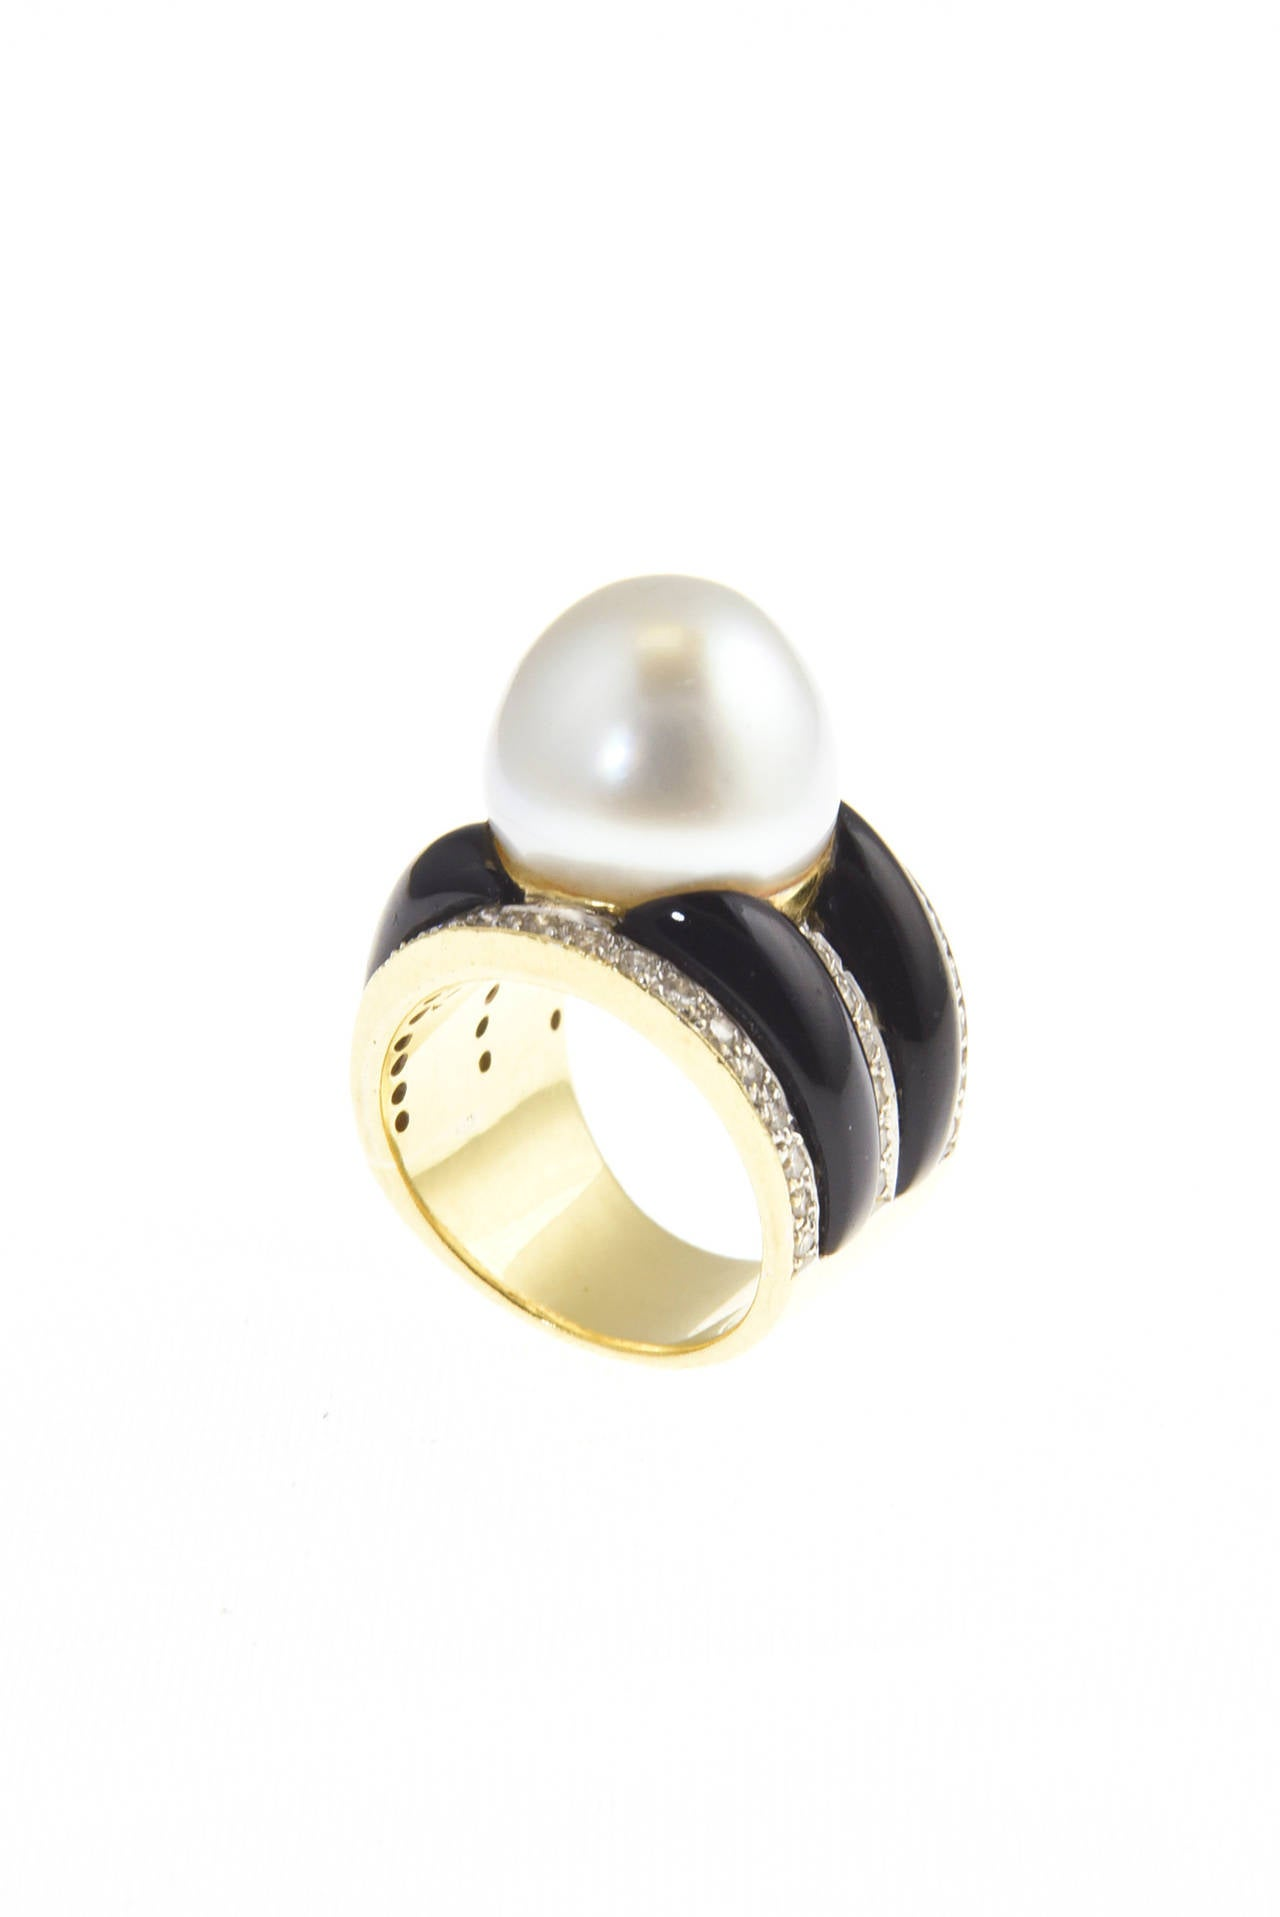 Finely made ring with clean classic lines featuring a South Sea Pearl center with interchanging diamond and onyx stripes mounted in 18k yellow gold.